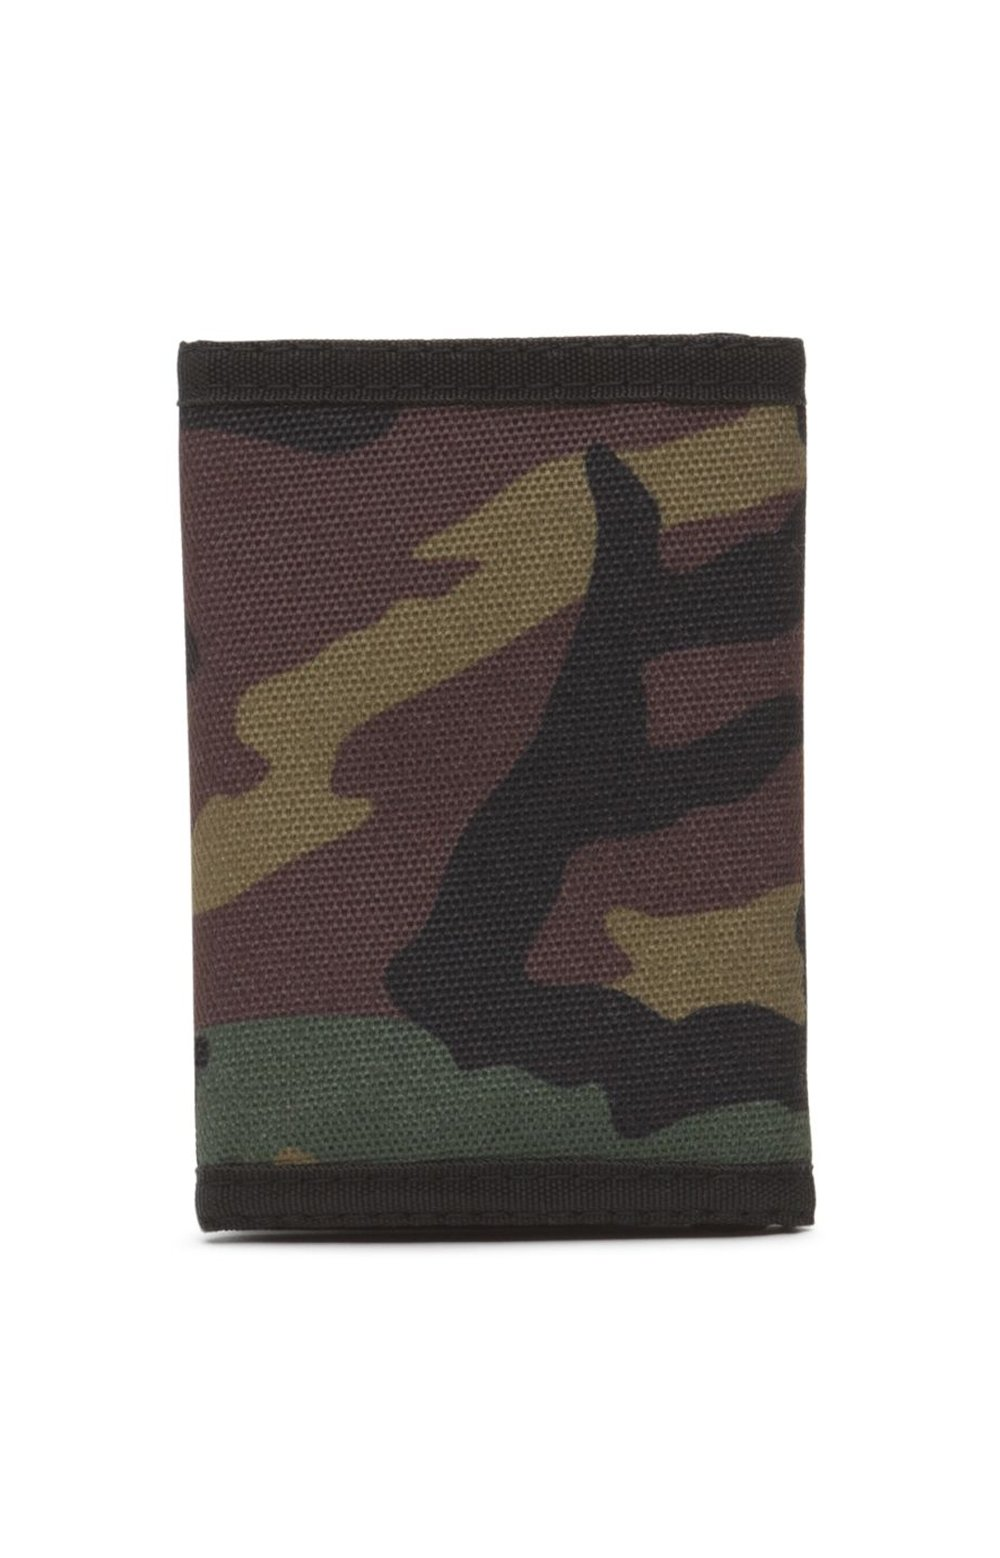 Slipped Wallet - Classic Camo 2